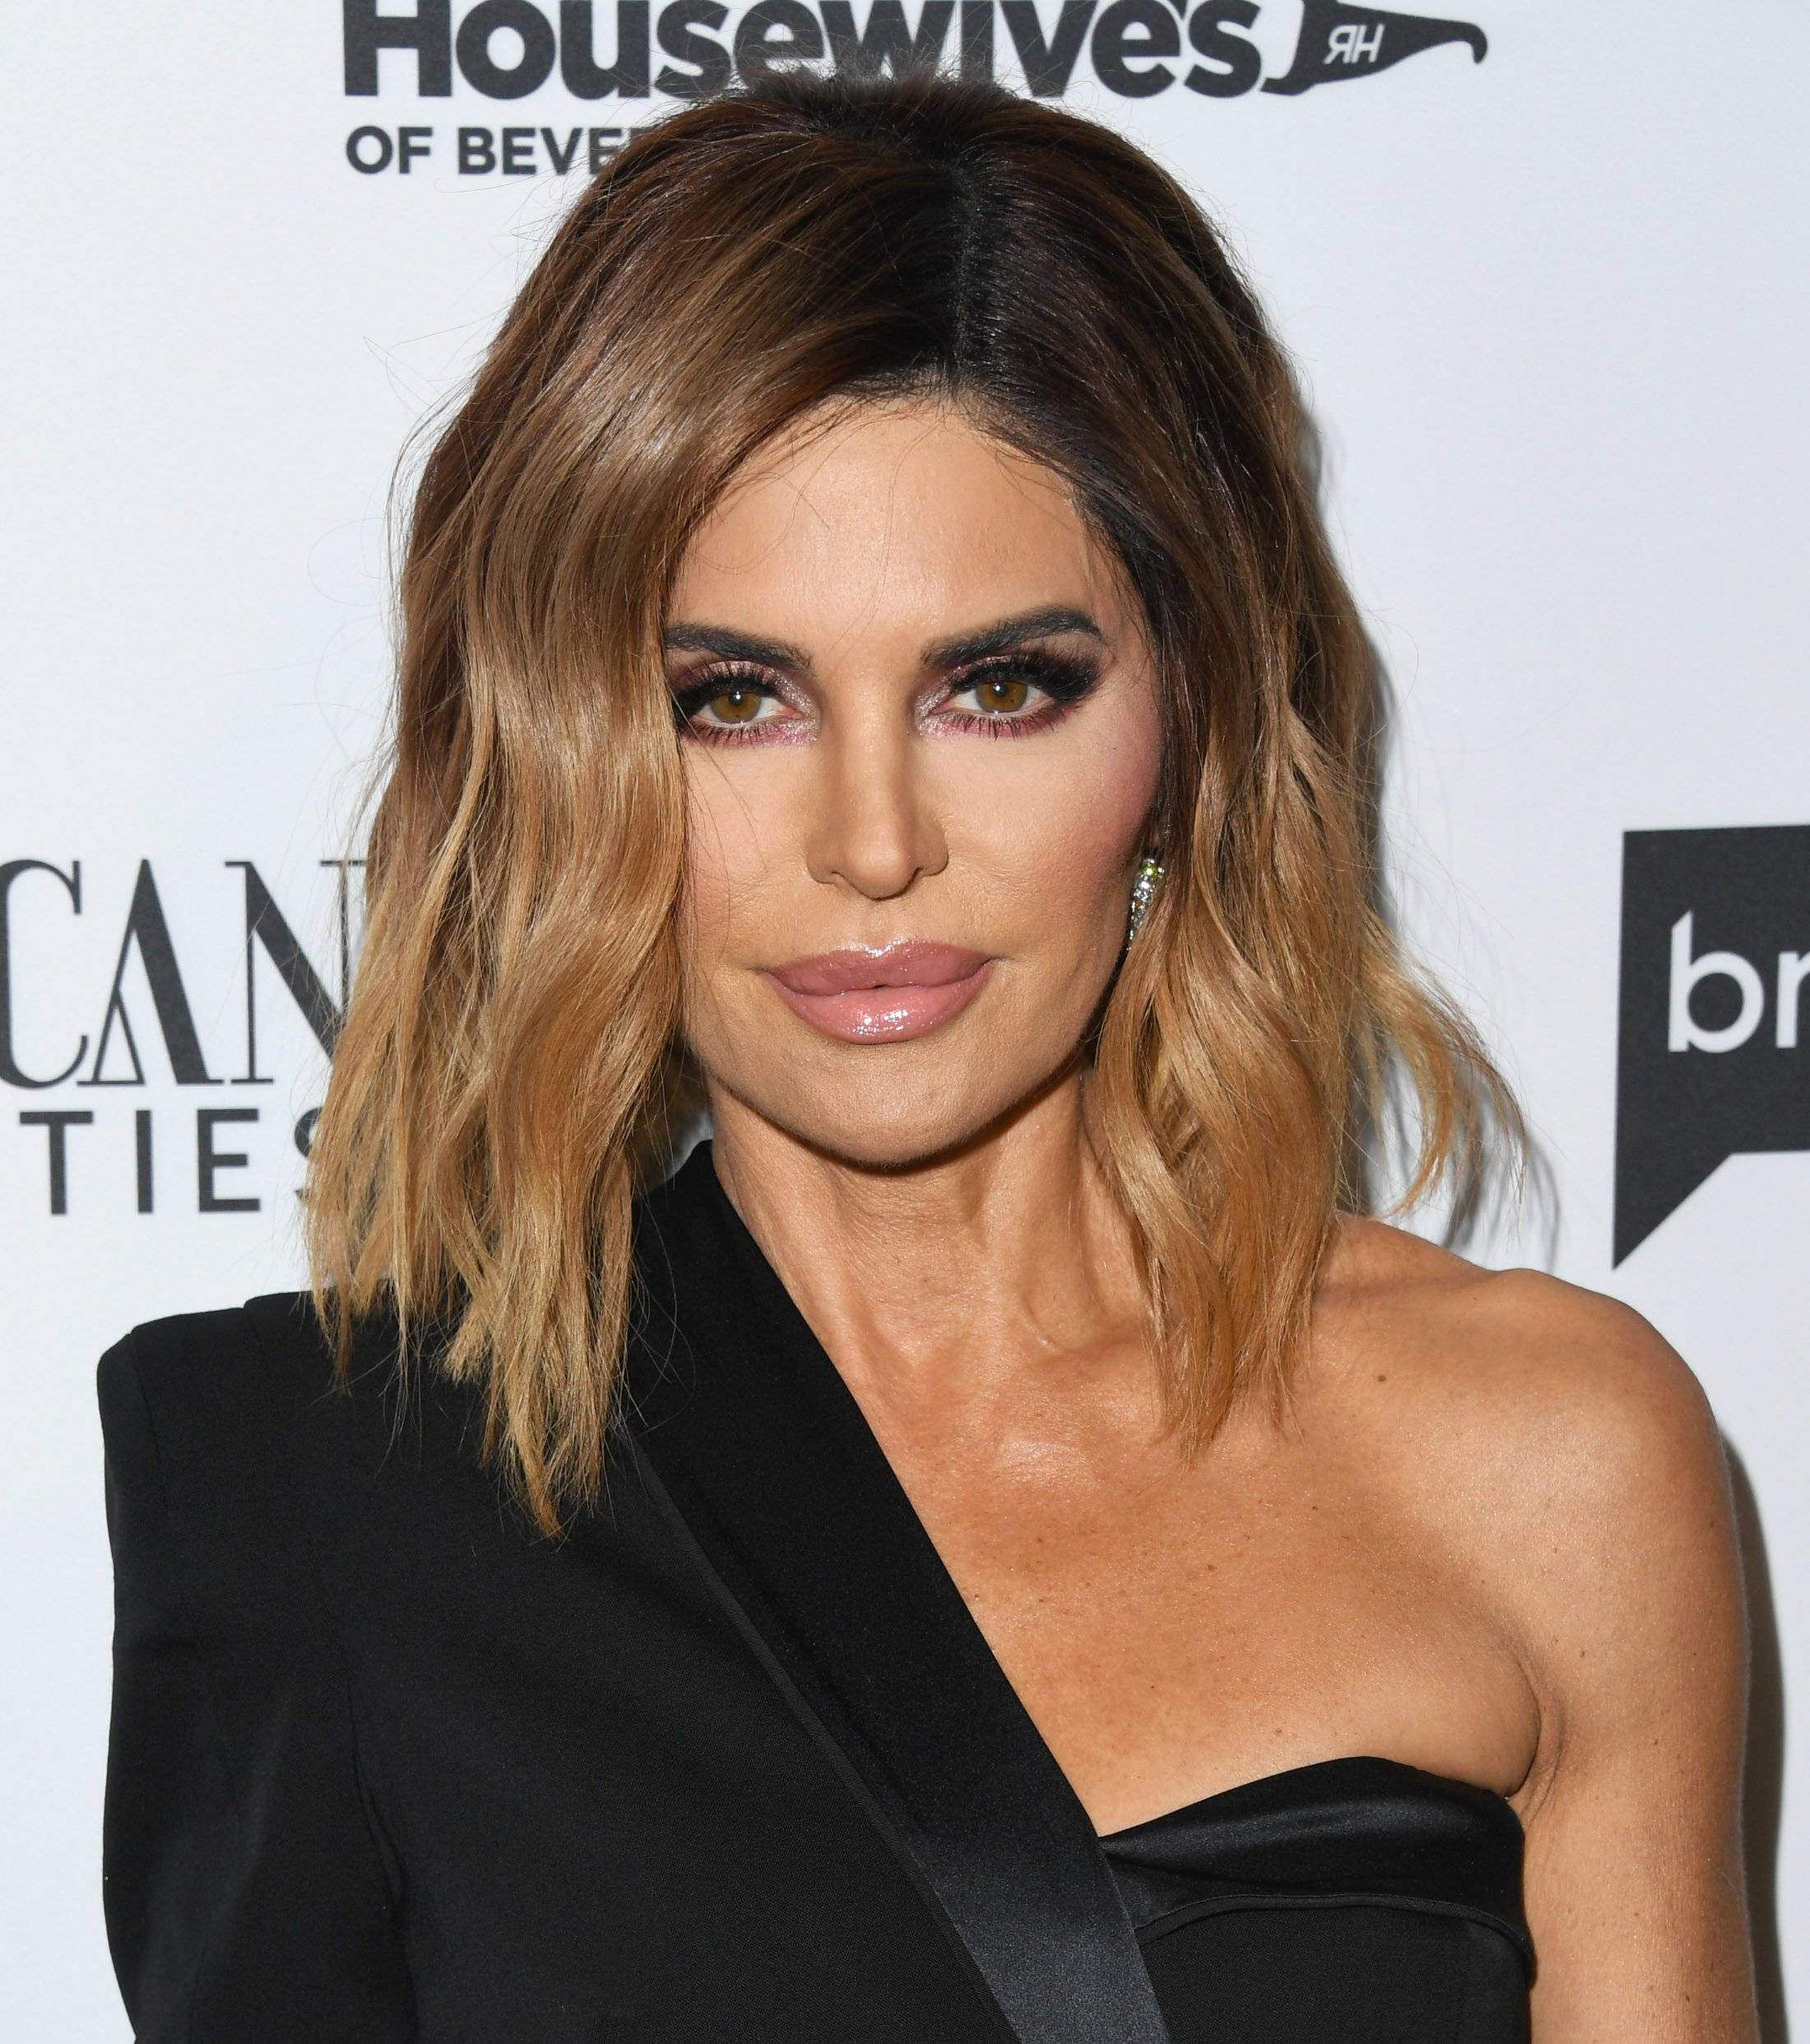 """Lisa Rinna attends Bravo's Premiere Party For """"The Real Housewives Of Beverly Hills"""" Season 9 on February 12, 2019, in West Hollywood, California. 